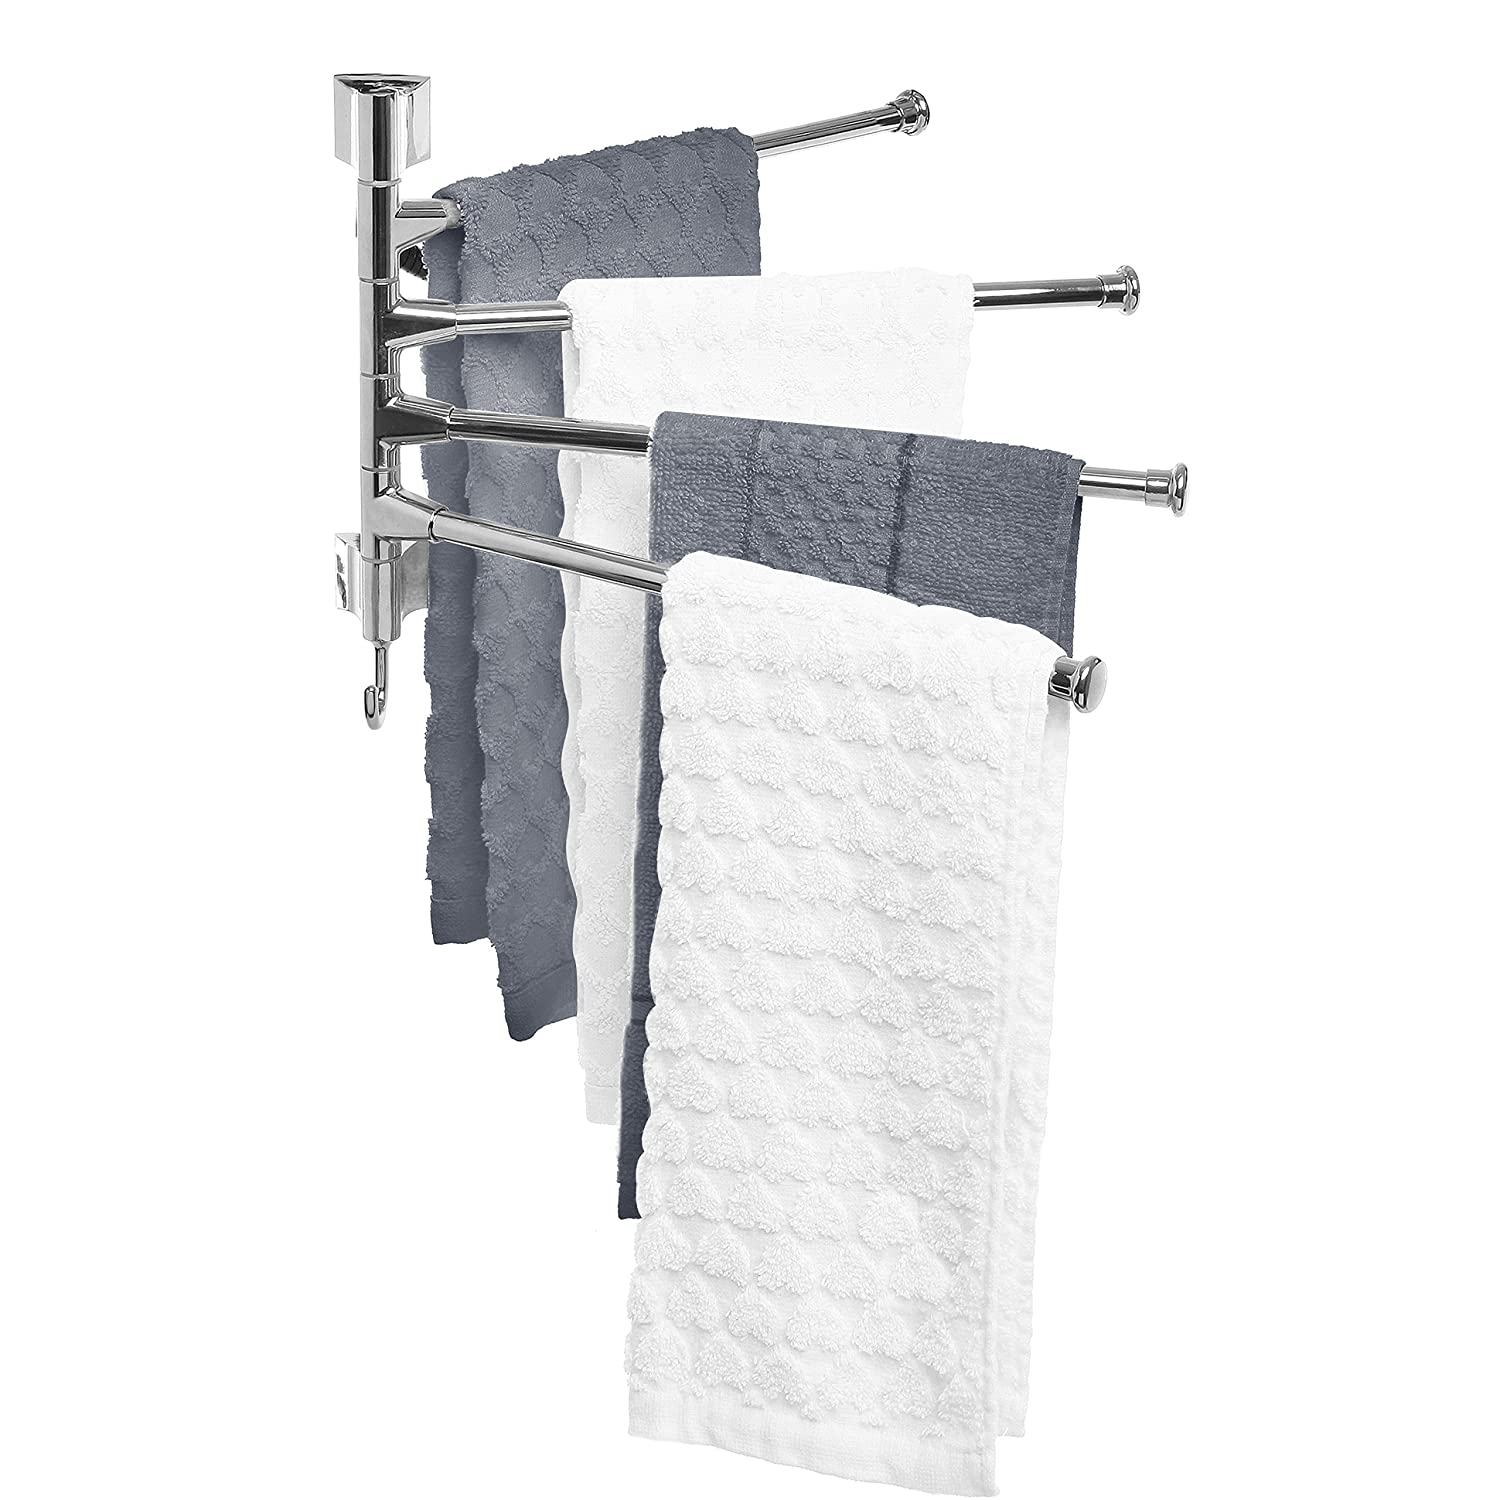 MyGift Wall Mounted Stainless Steel Swivel Towel Bar/4 Swing Arm Hand Towel Drying Rack for Bathroom and Kitchen 5853112